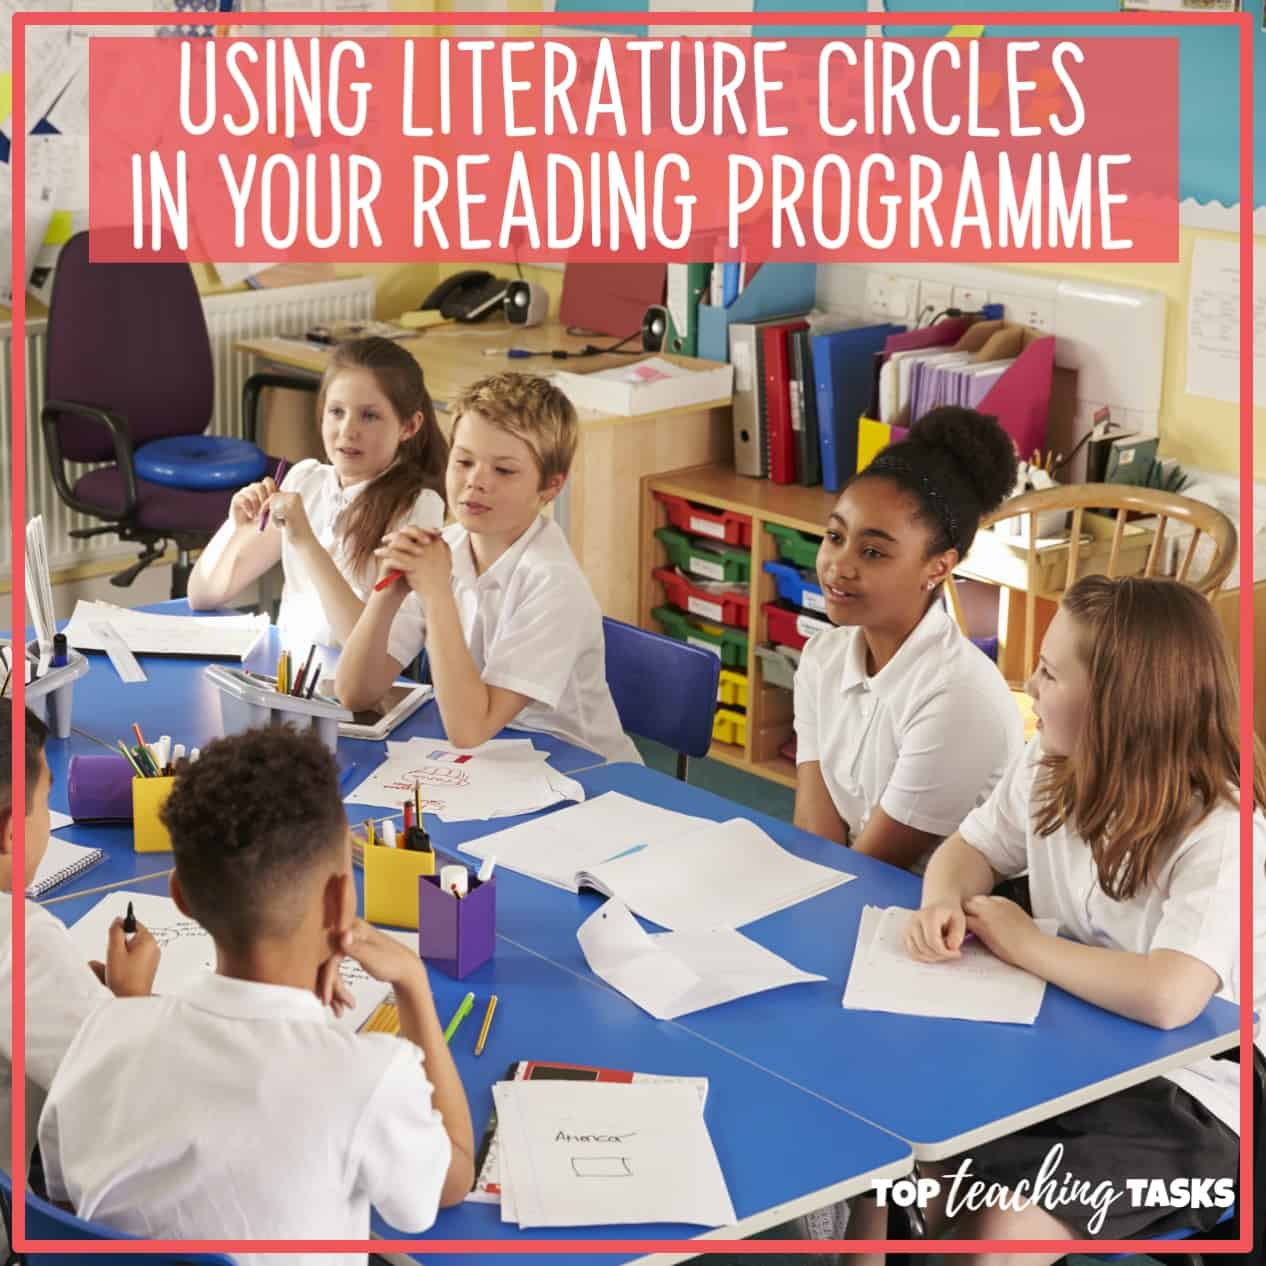 Literature Circles in your reading programme